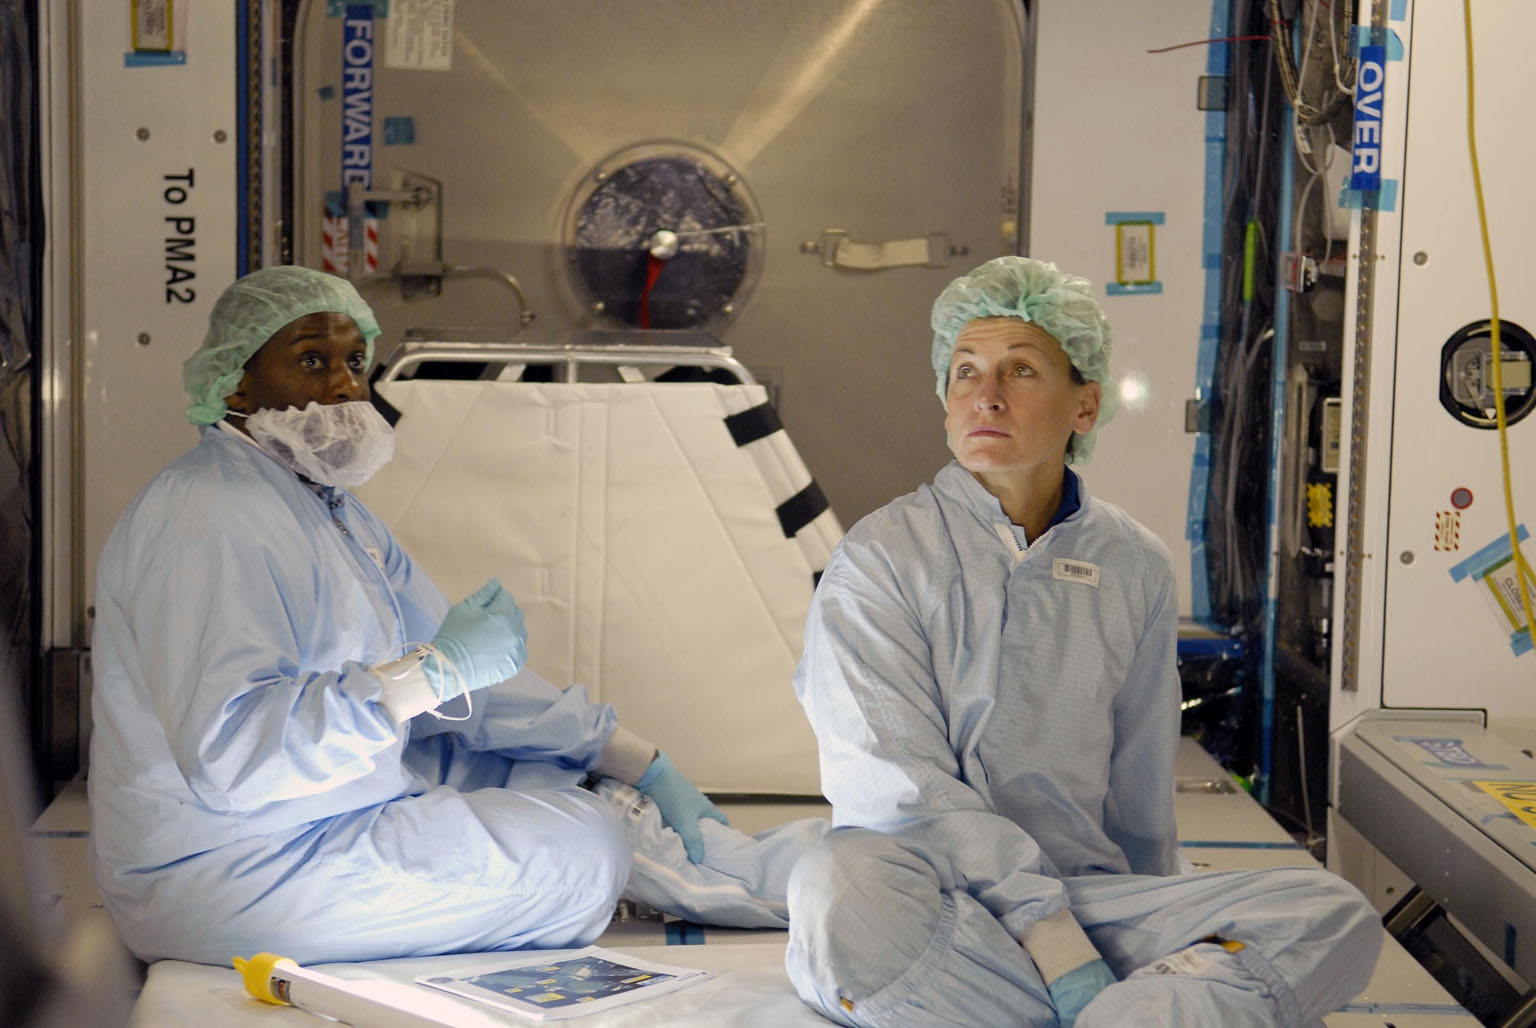 KENNEDY SPACE CENTER, FLA. -- In the Space Station Processing Facility at NASA's Kennedy Space Center, astronaut Peggy Whitson (right) is familiarizing herself with the U.S. Laboratory Node 2, which is the payload for mission STS-120 targeted for launch in September.